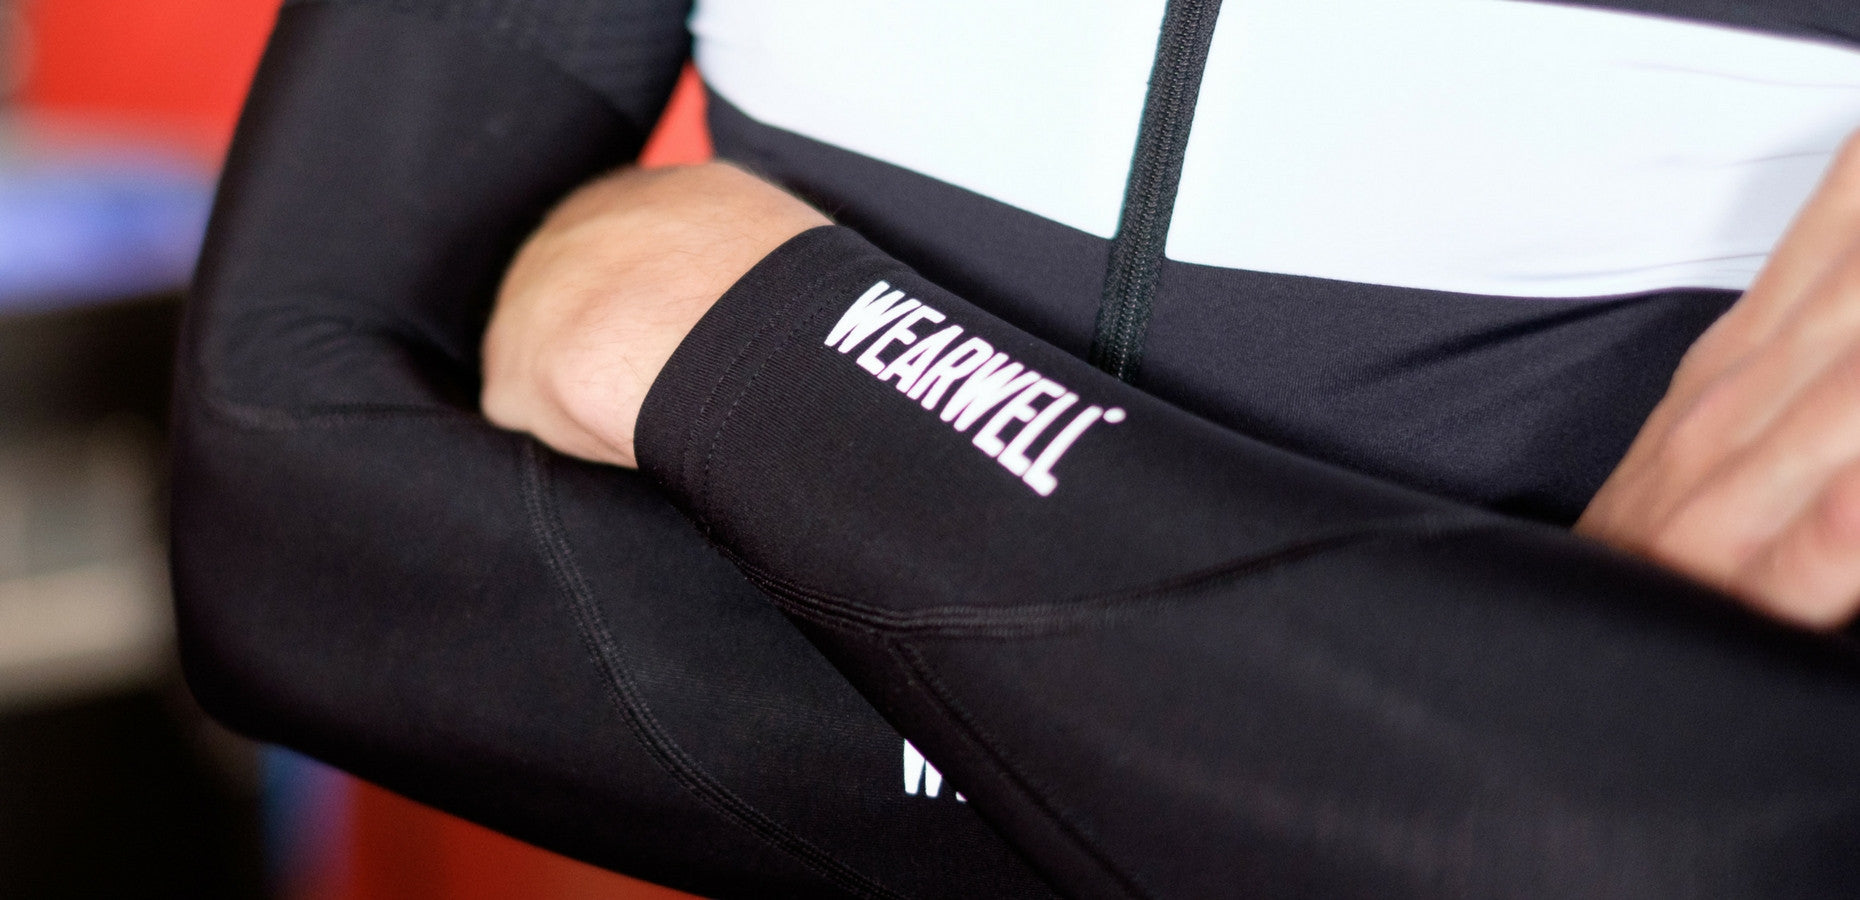 Wearwell Cycle Company | Arm Warmers Collection